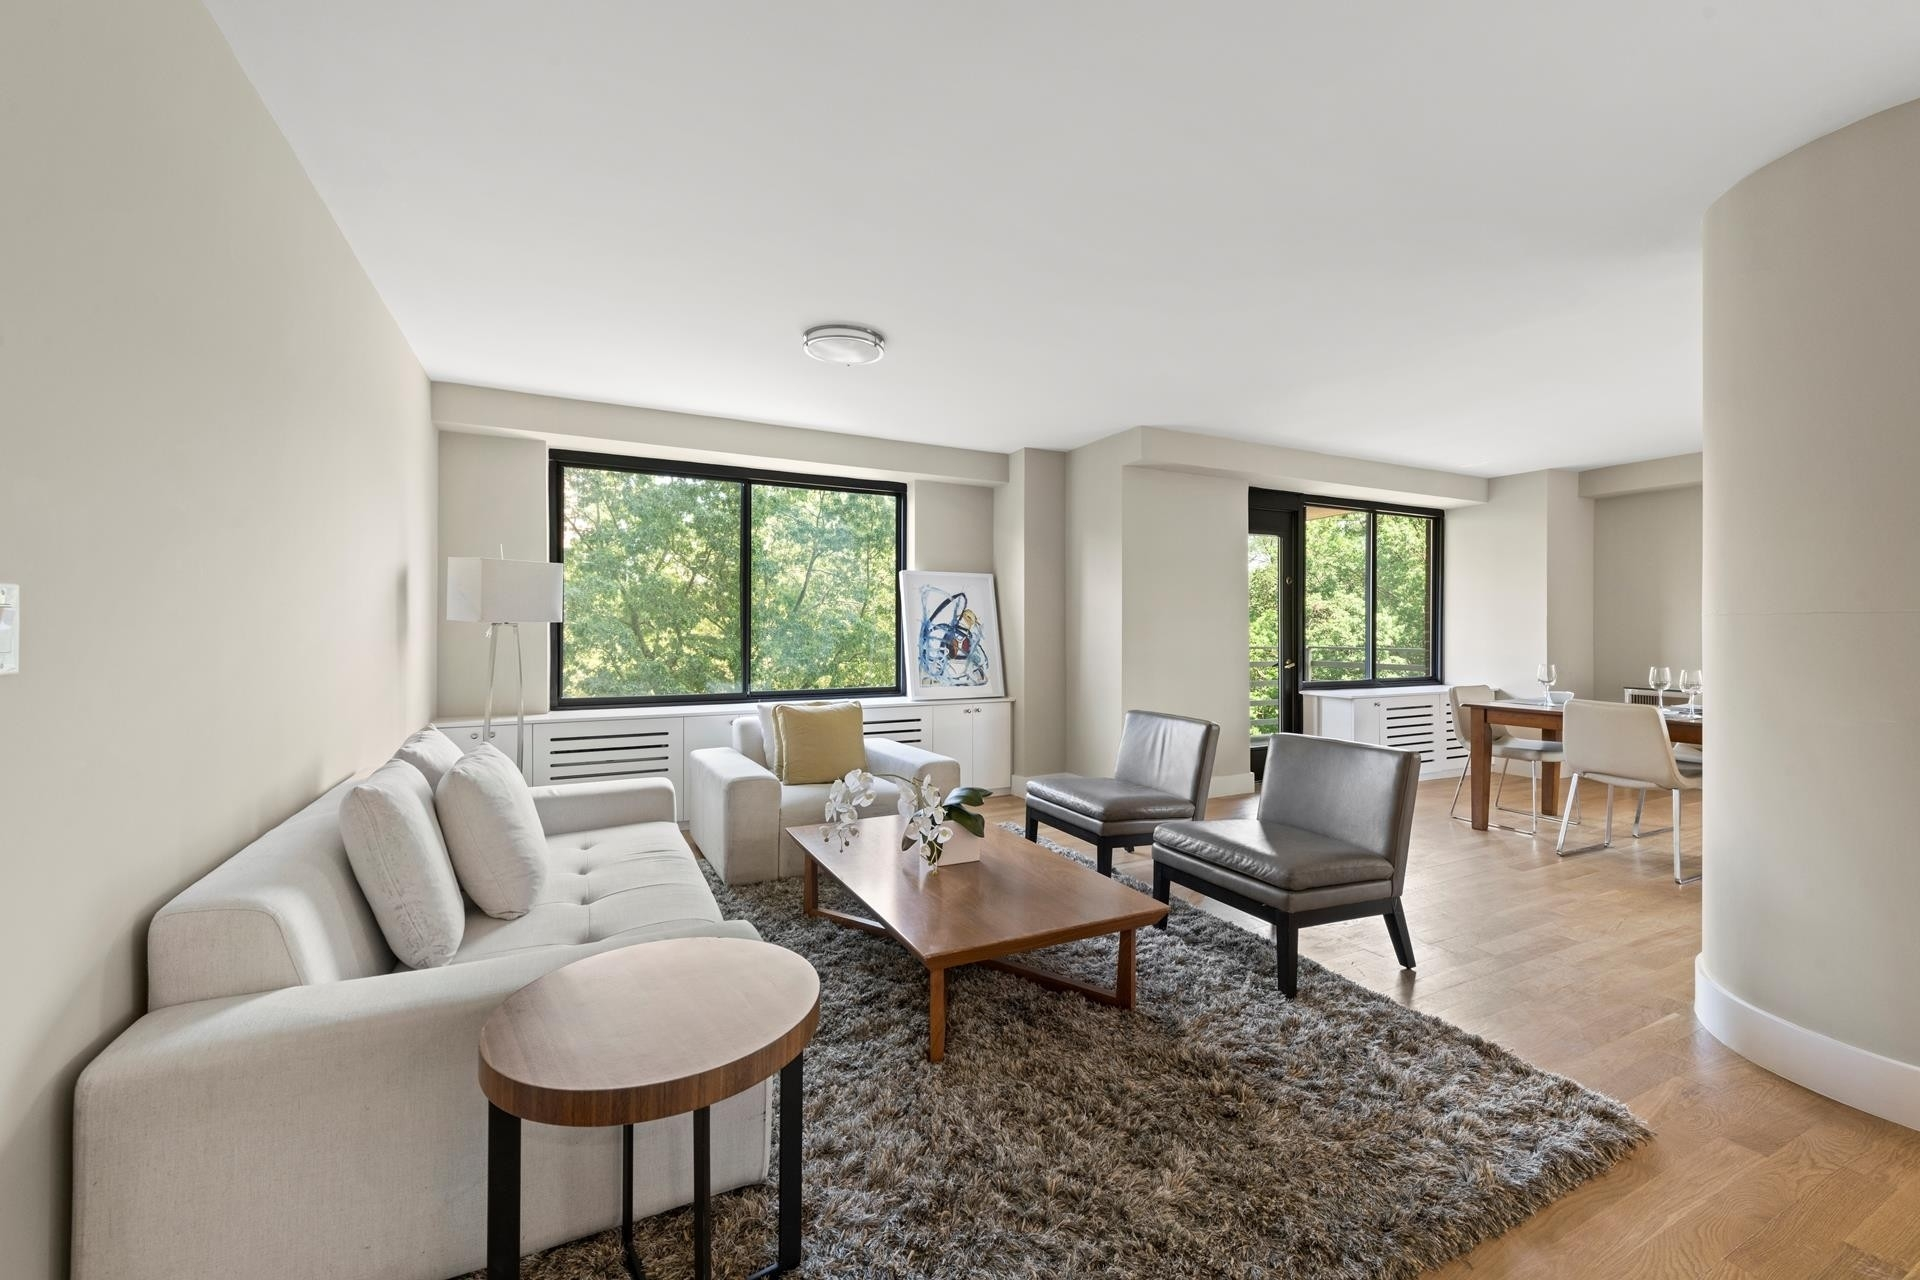 Property at 372 Central Park West, 5BC Manhattan Valley, New York, NY 10025